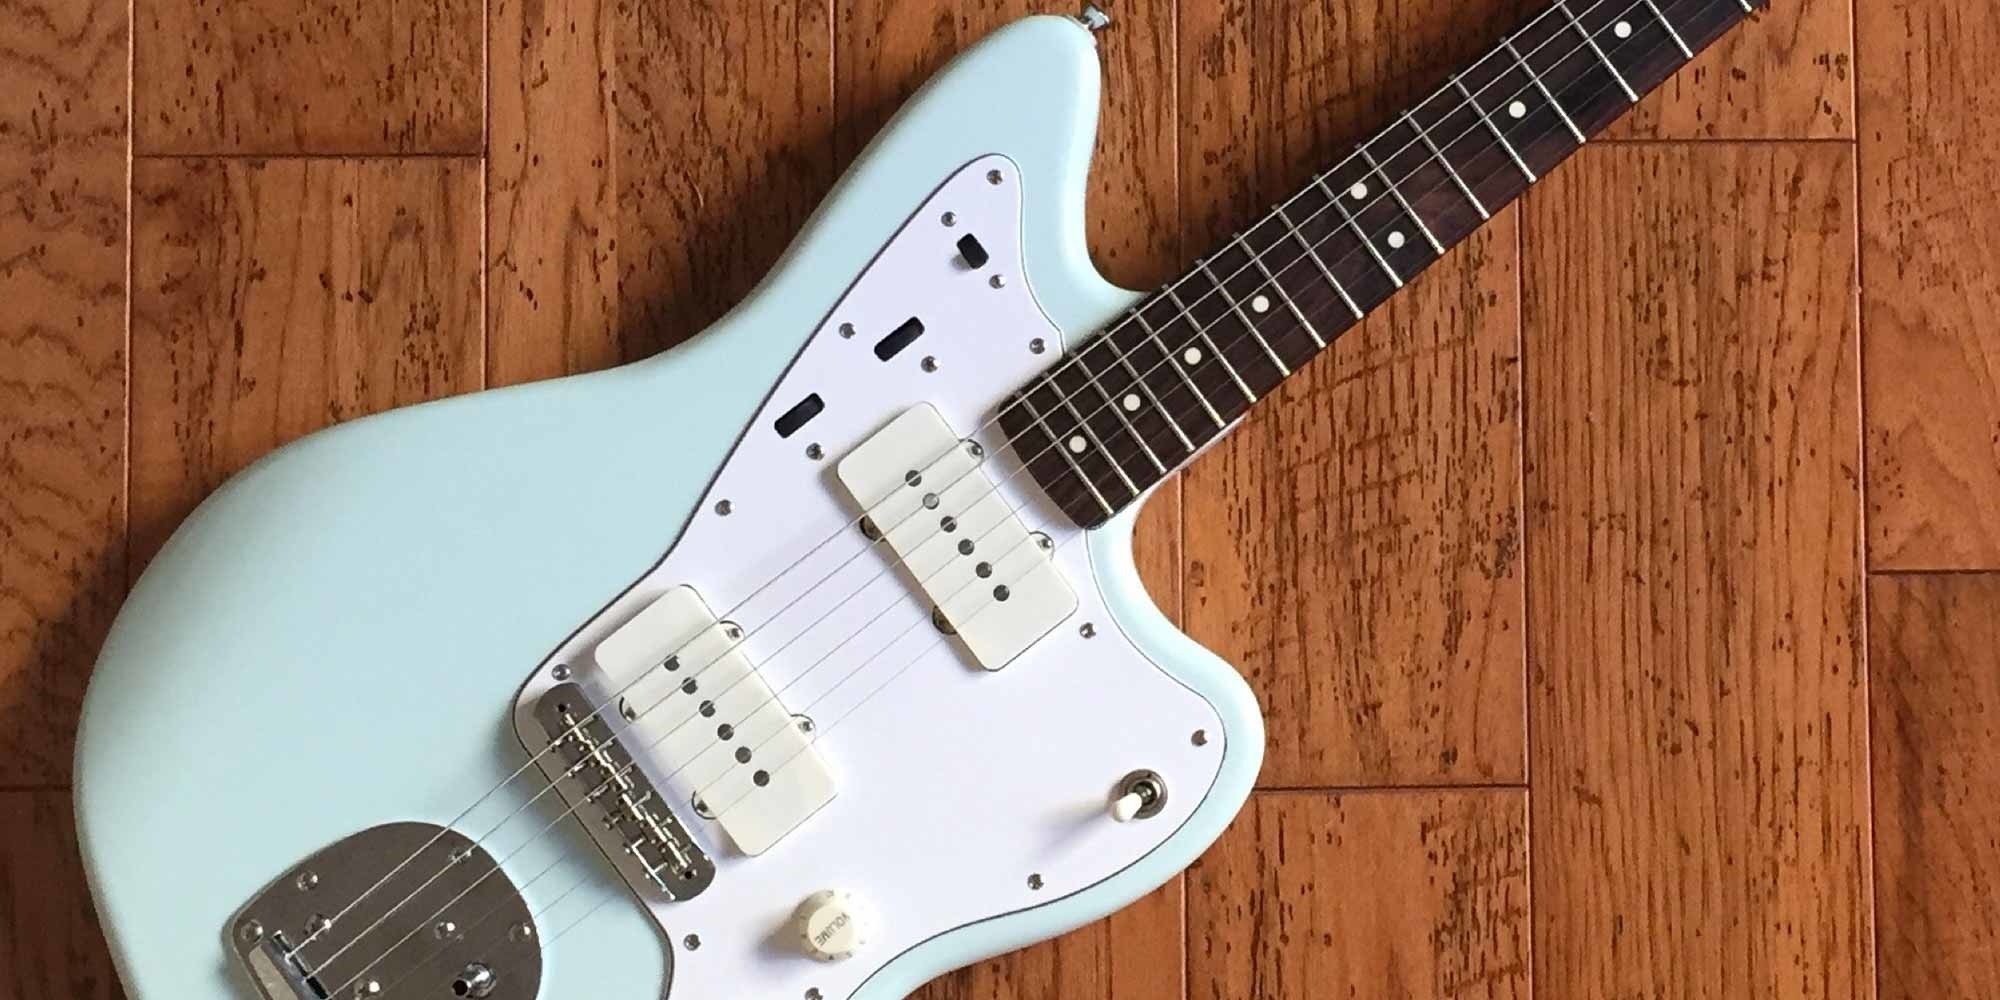 Upgrading Jazzmaster Electronics Part Ii Wiring Mods Reverb News Guitar Diagrams No Tone In The First Of This Series We Discussed Ways To Upgrade A Stock Squier Vintage Modified Here Well Lay Out Some That Can Give